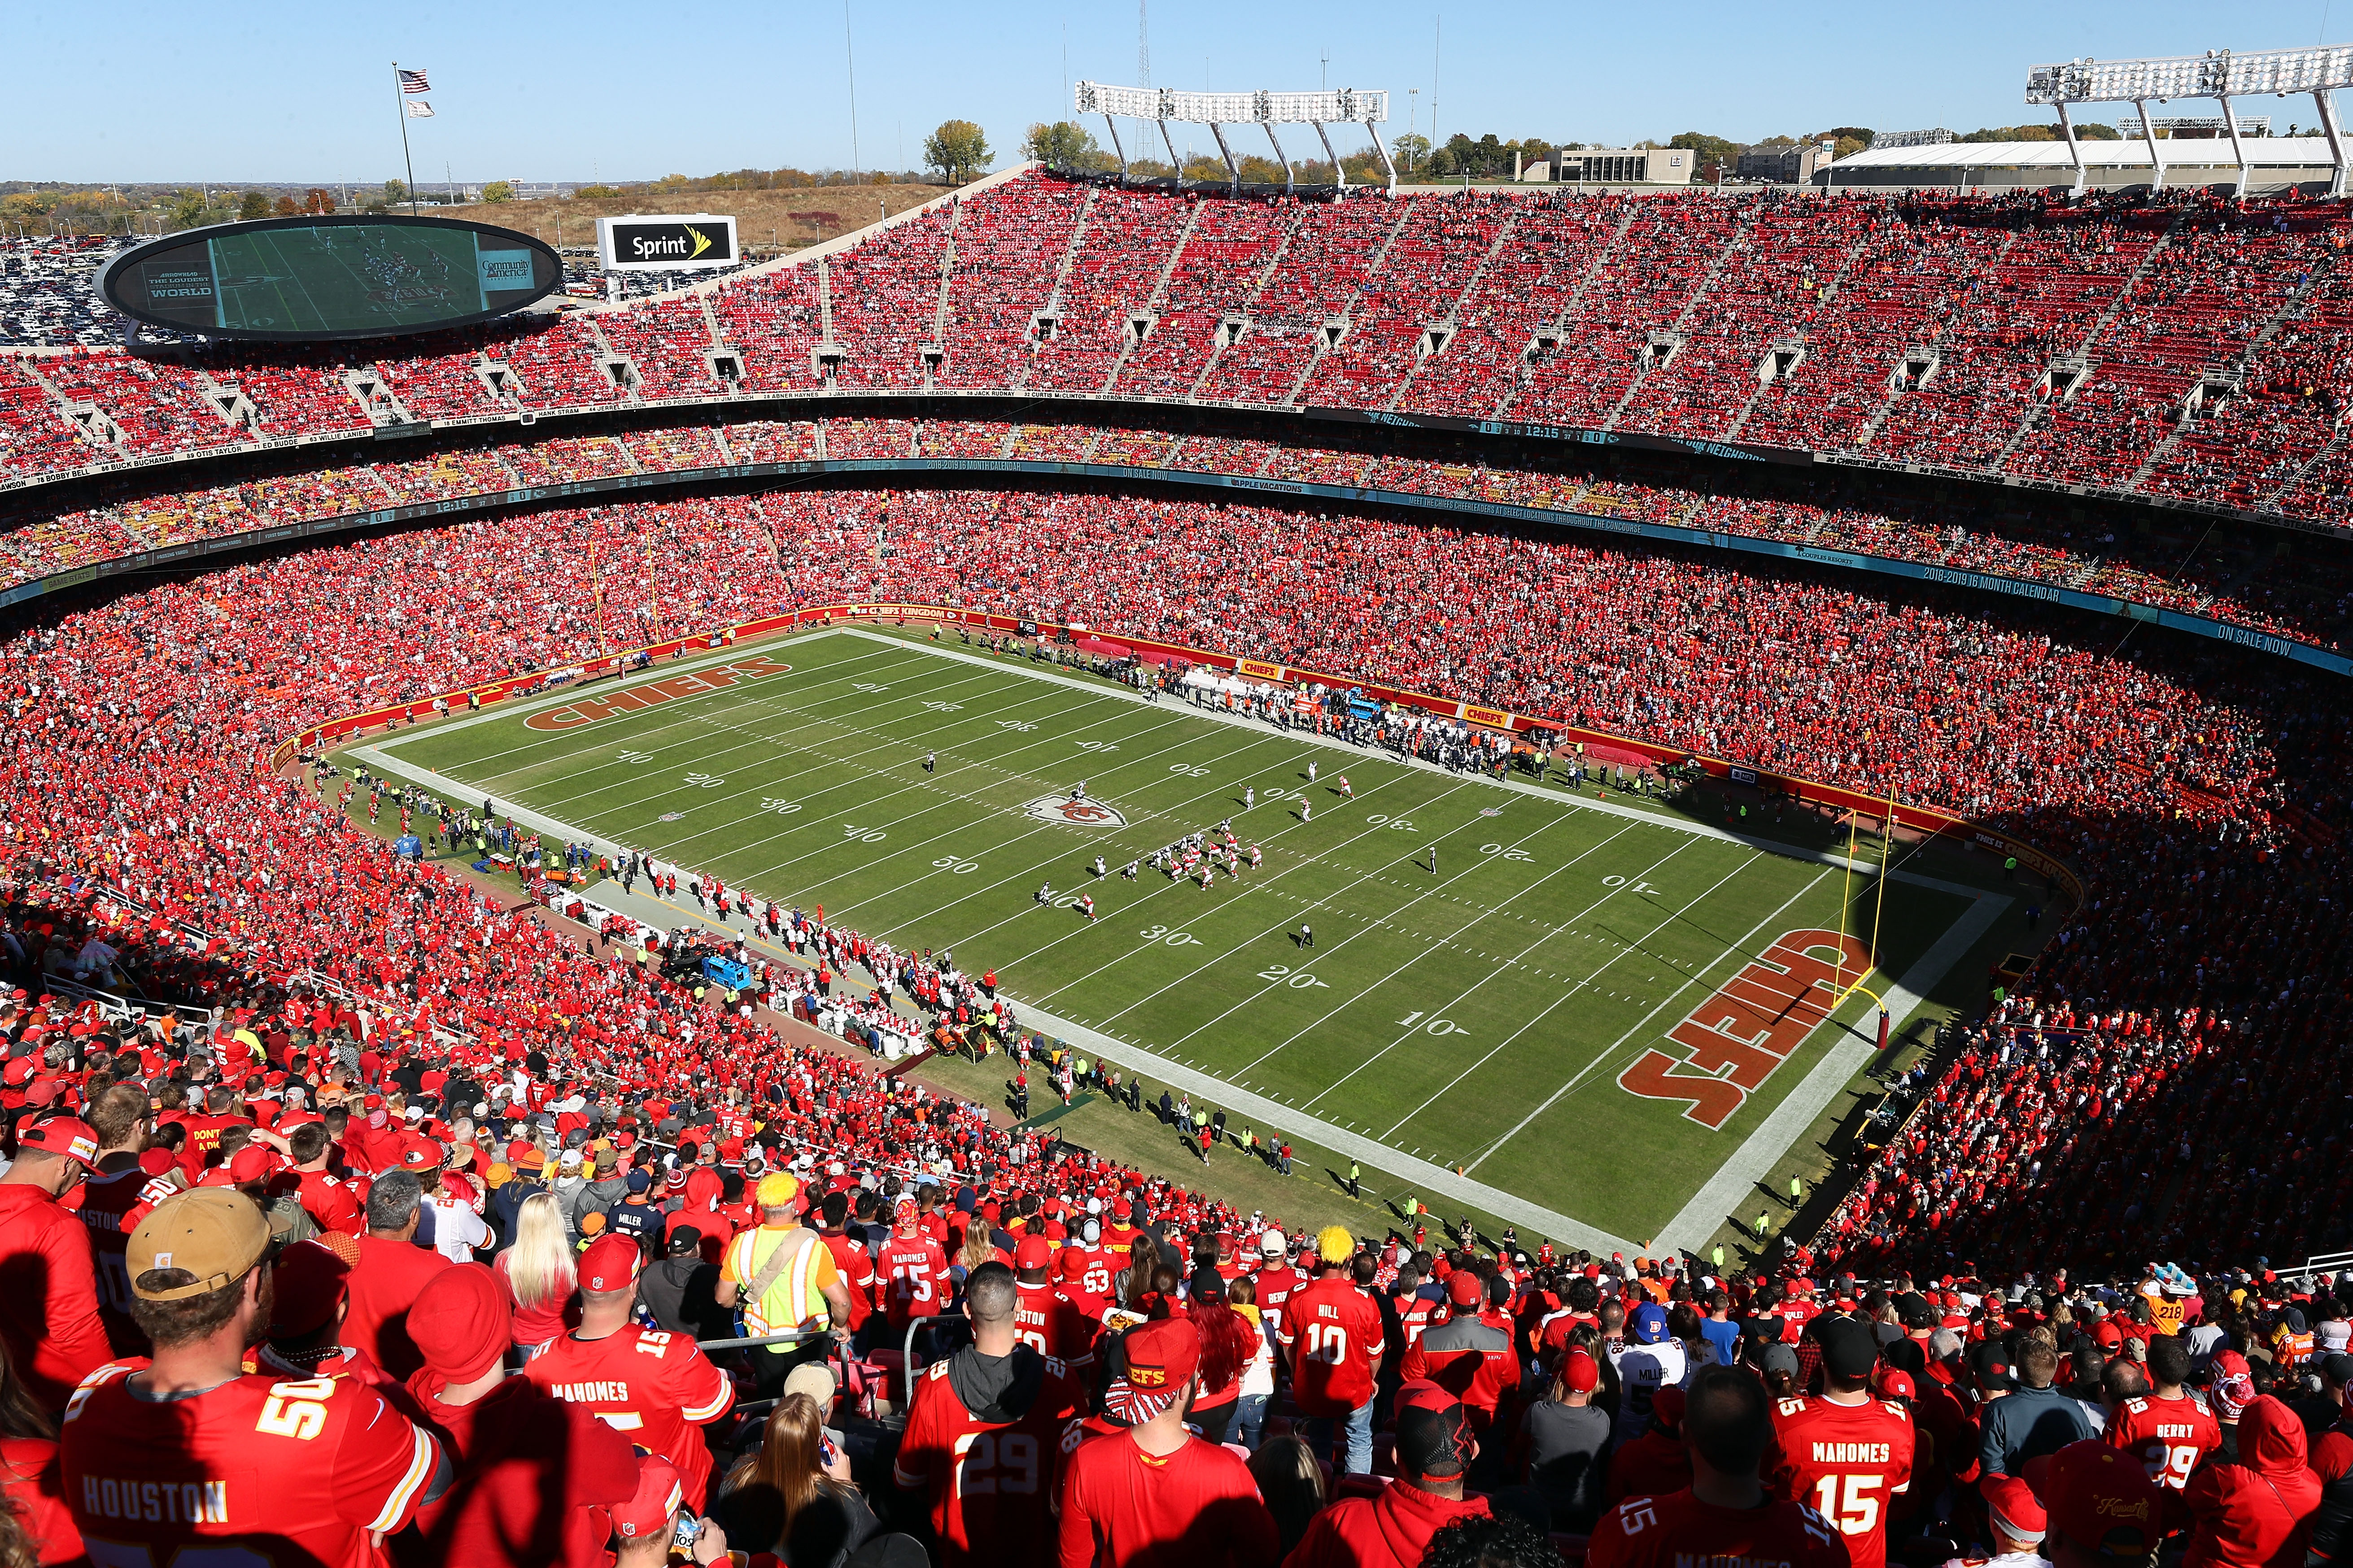 KANSAS CITY, MO - OCTOBER 28: A general view of Arrowhead stadium during the game between the Denver Broncos and the Kansas City Chiefs 28, 2018 in Kansas City, Missouri. (Photo by Jamie Squire/Getty Images)